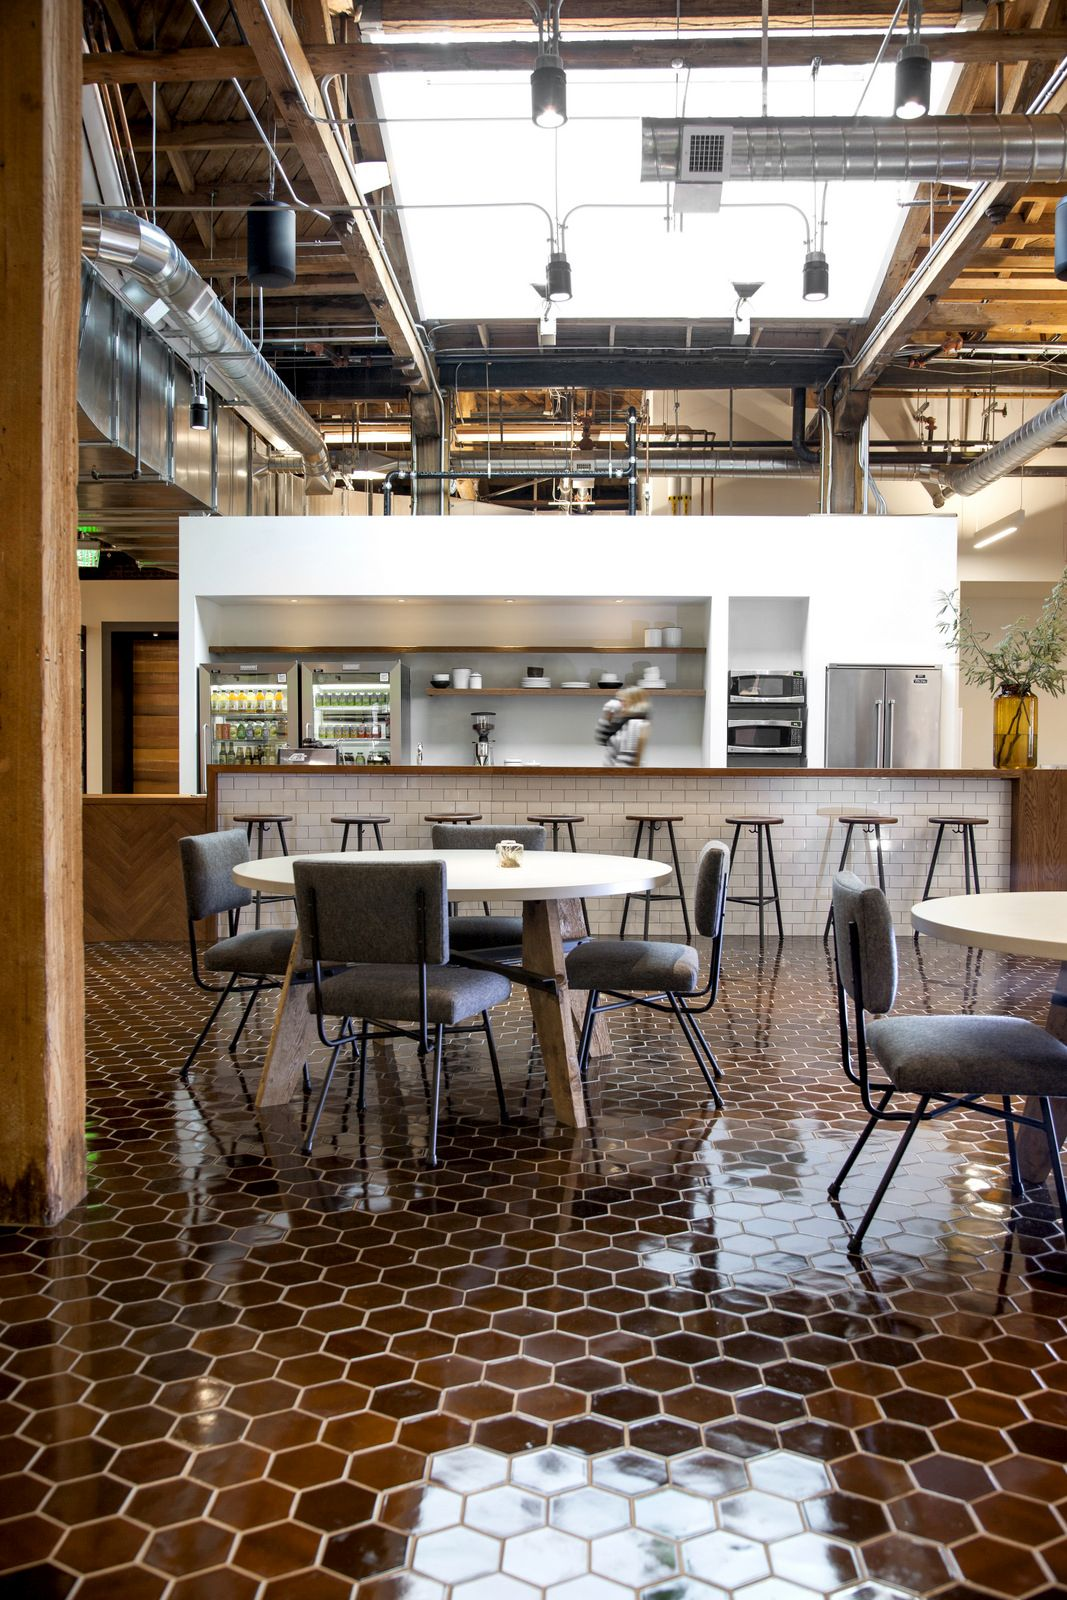 One of the workspaces is a casual and open coffee shop/ cafeteria style space with a high ceiling and tiled floor